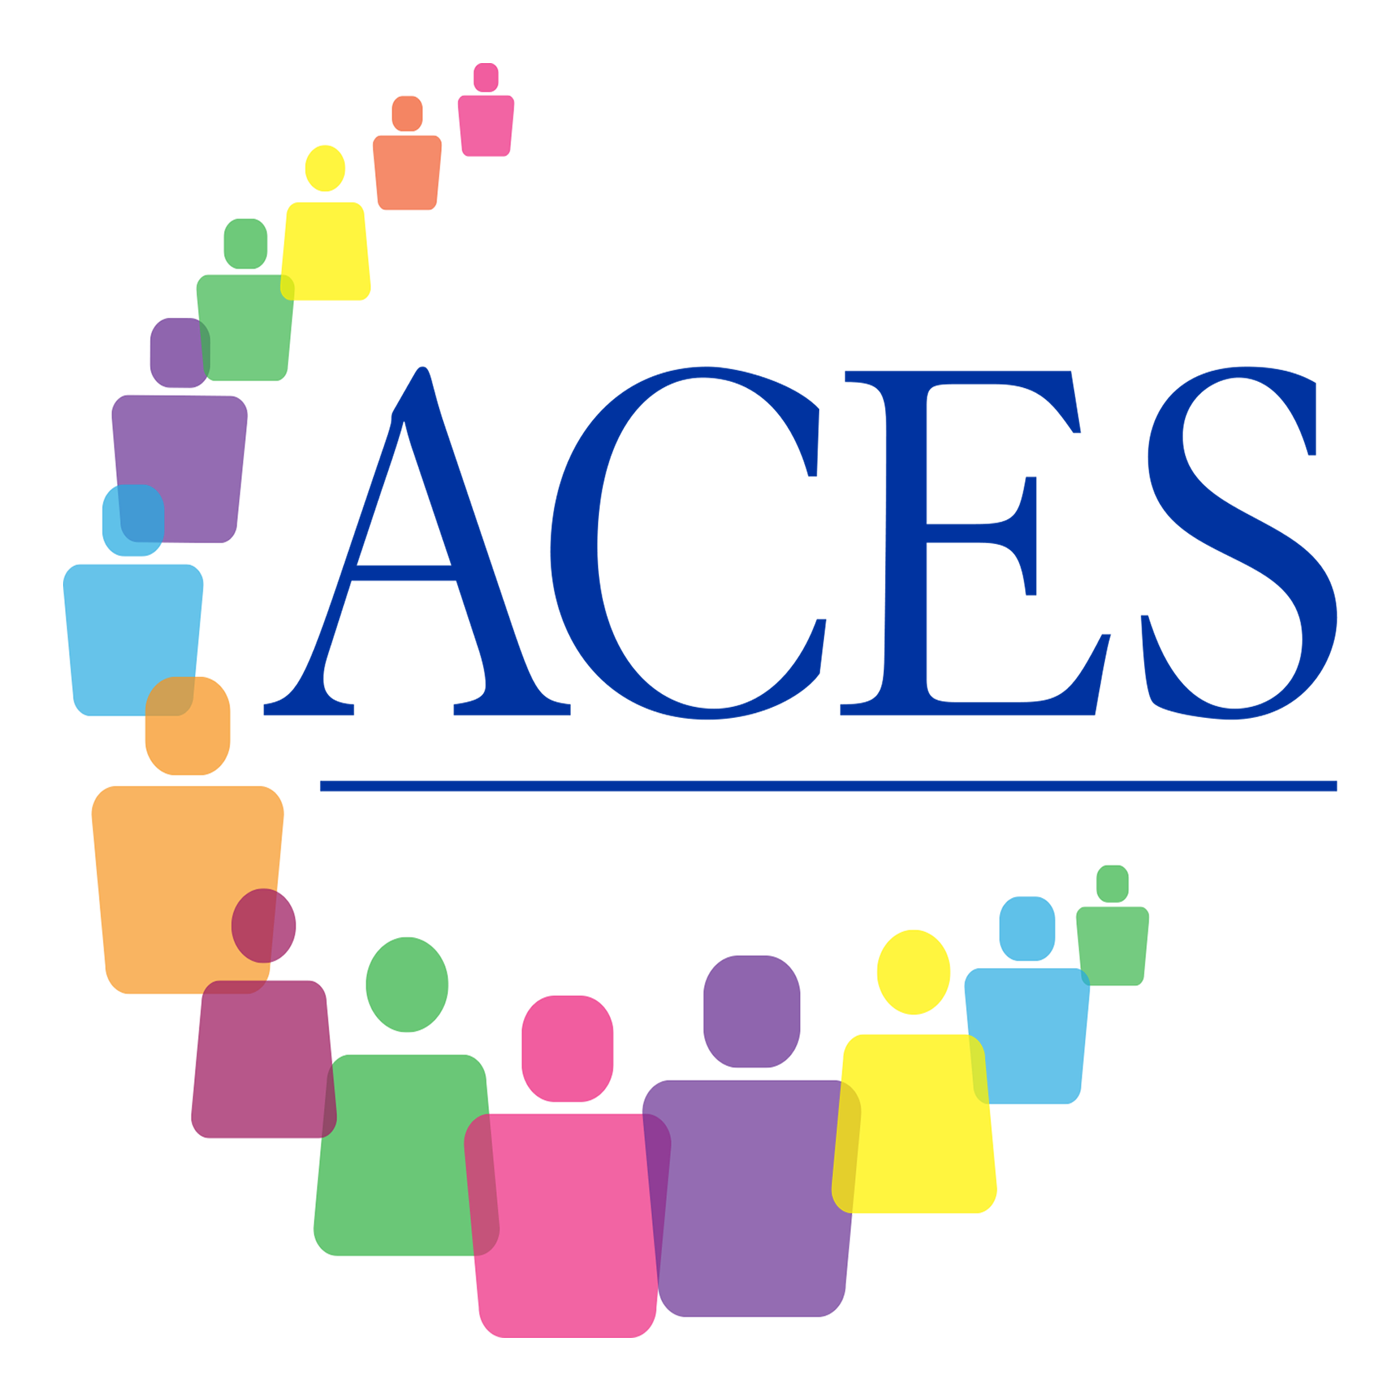 ACES003: ACES Emerging Leaders - On the Road to ACES2019